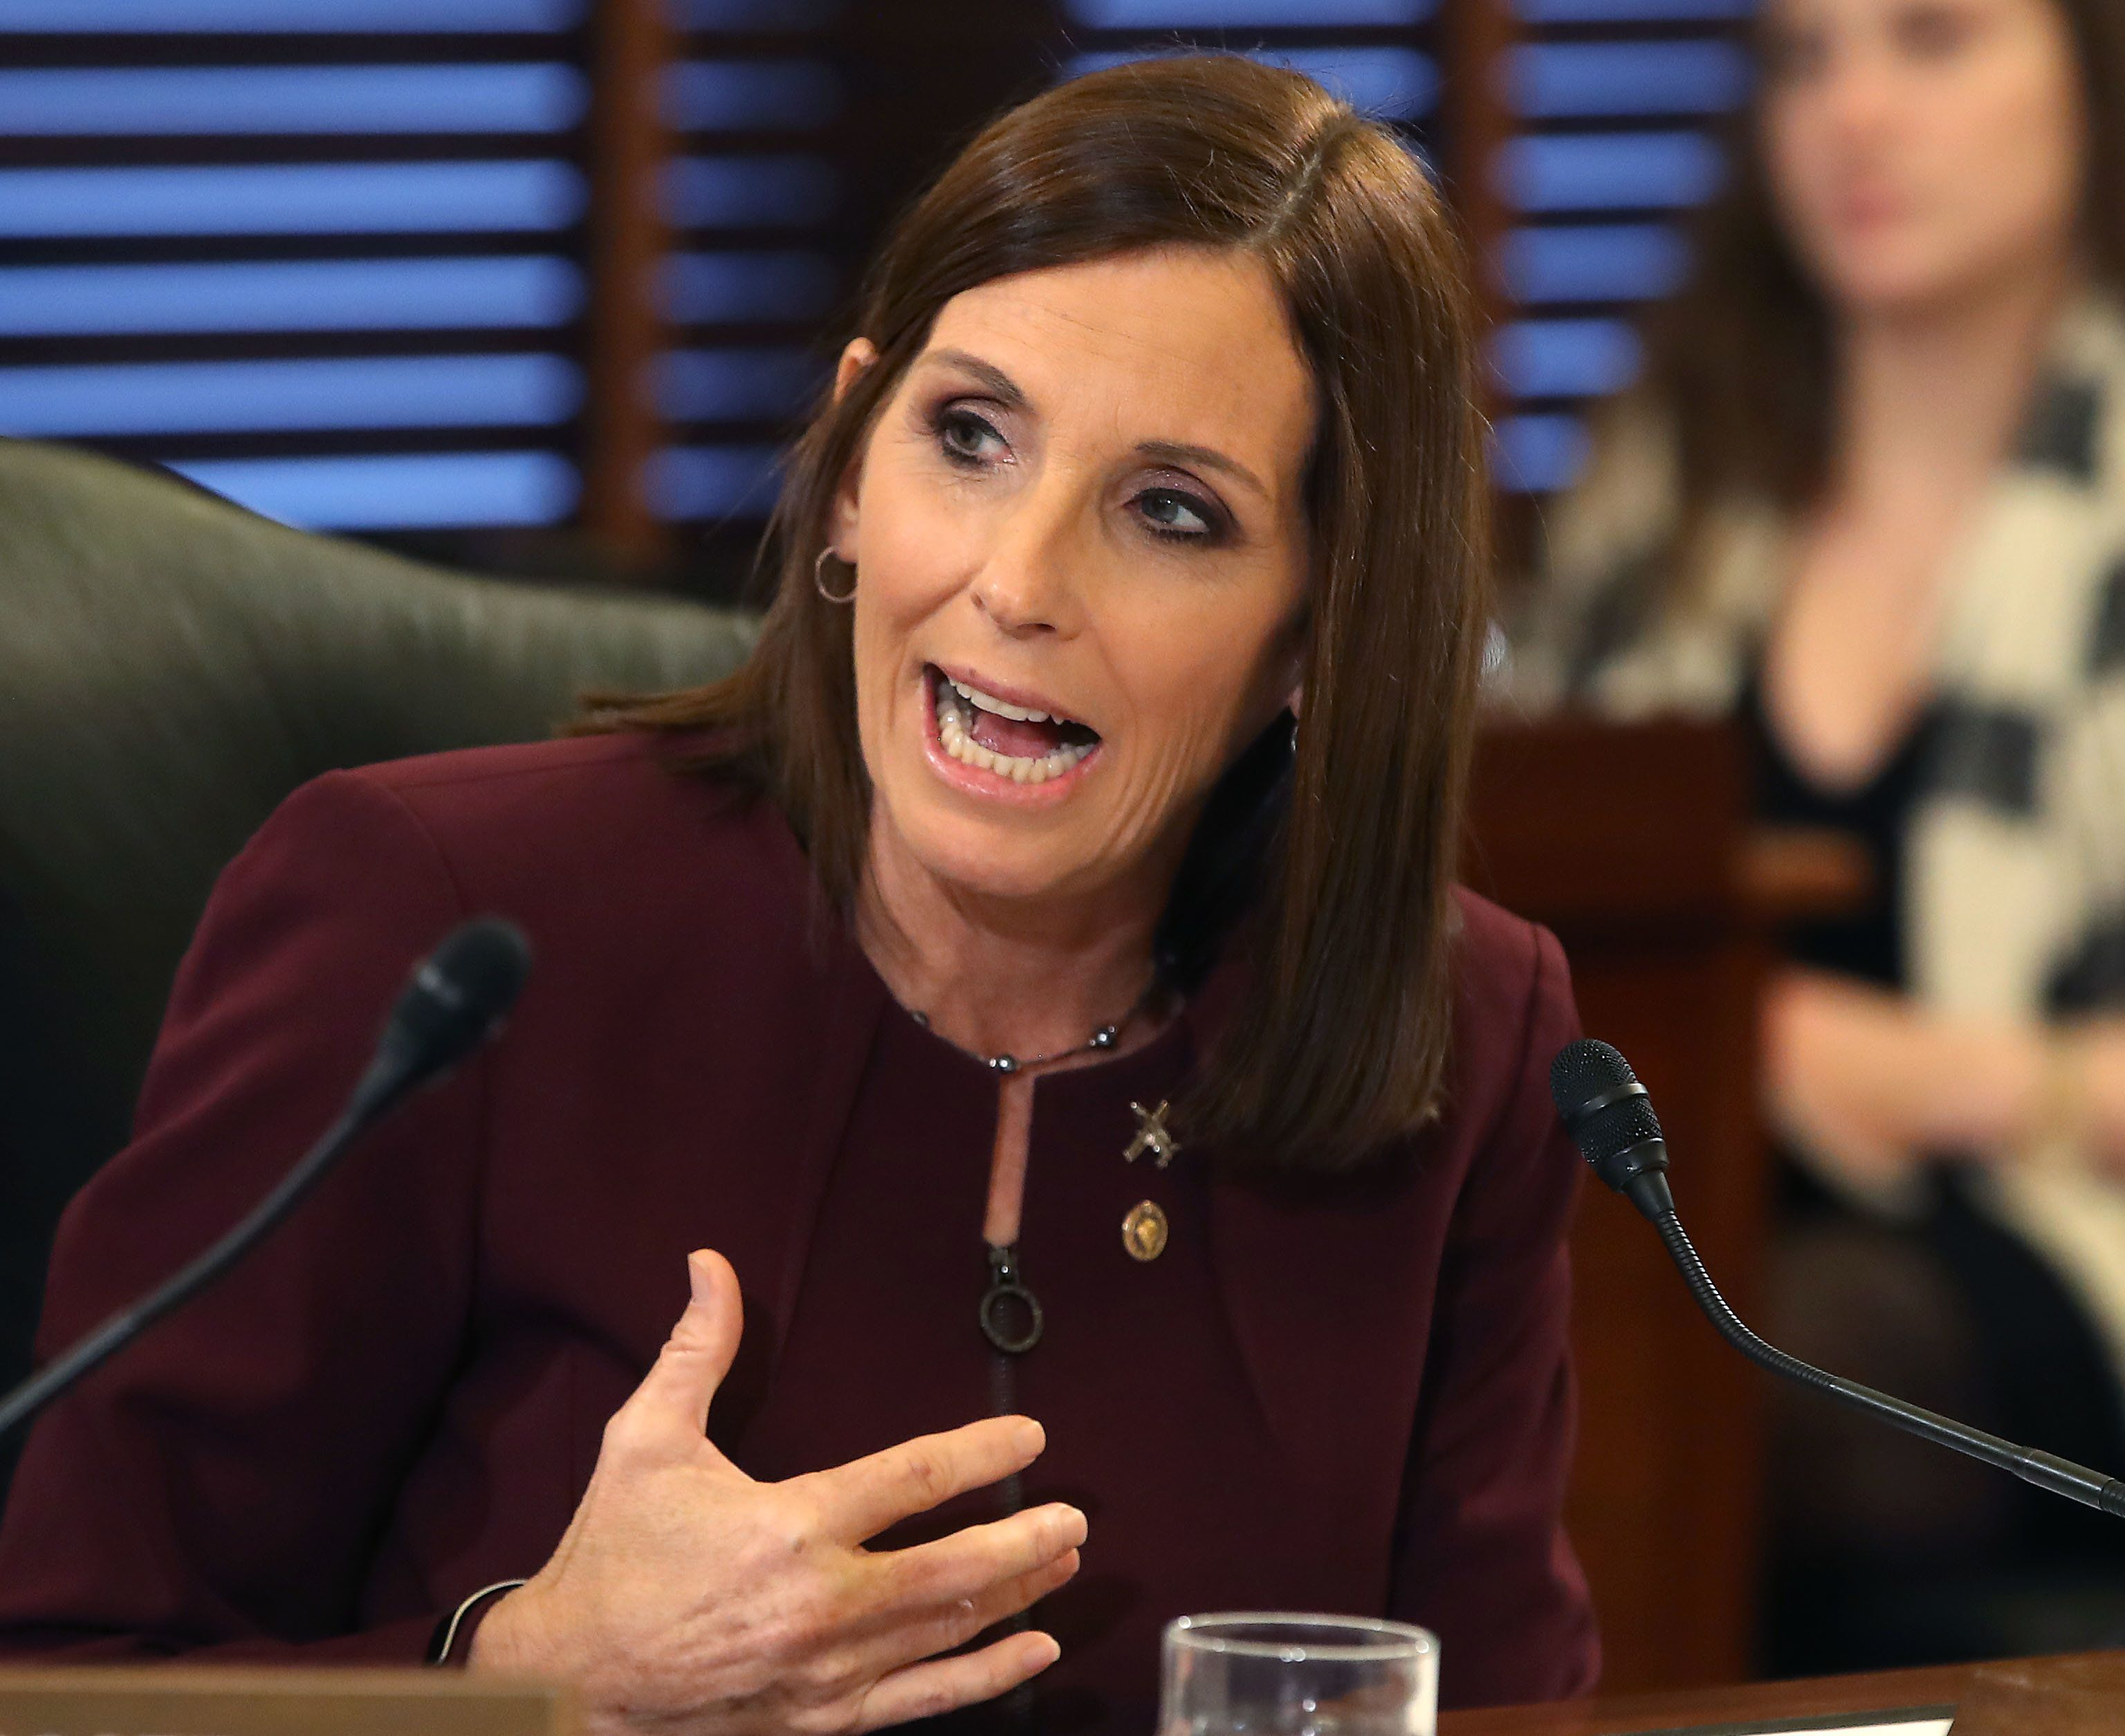 WASHINGTON, DC - MARCH 06: Sen. Martha McSally (R-AZ) speaks during a Senate Armed Service Committee on prevention and response to sexual assaults in the military, on March 6, 2019 in Washington, DC.    (Photo by Mark Wilson/Getty Images)